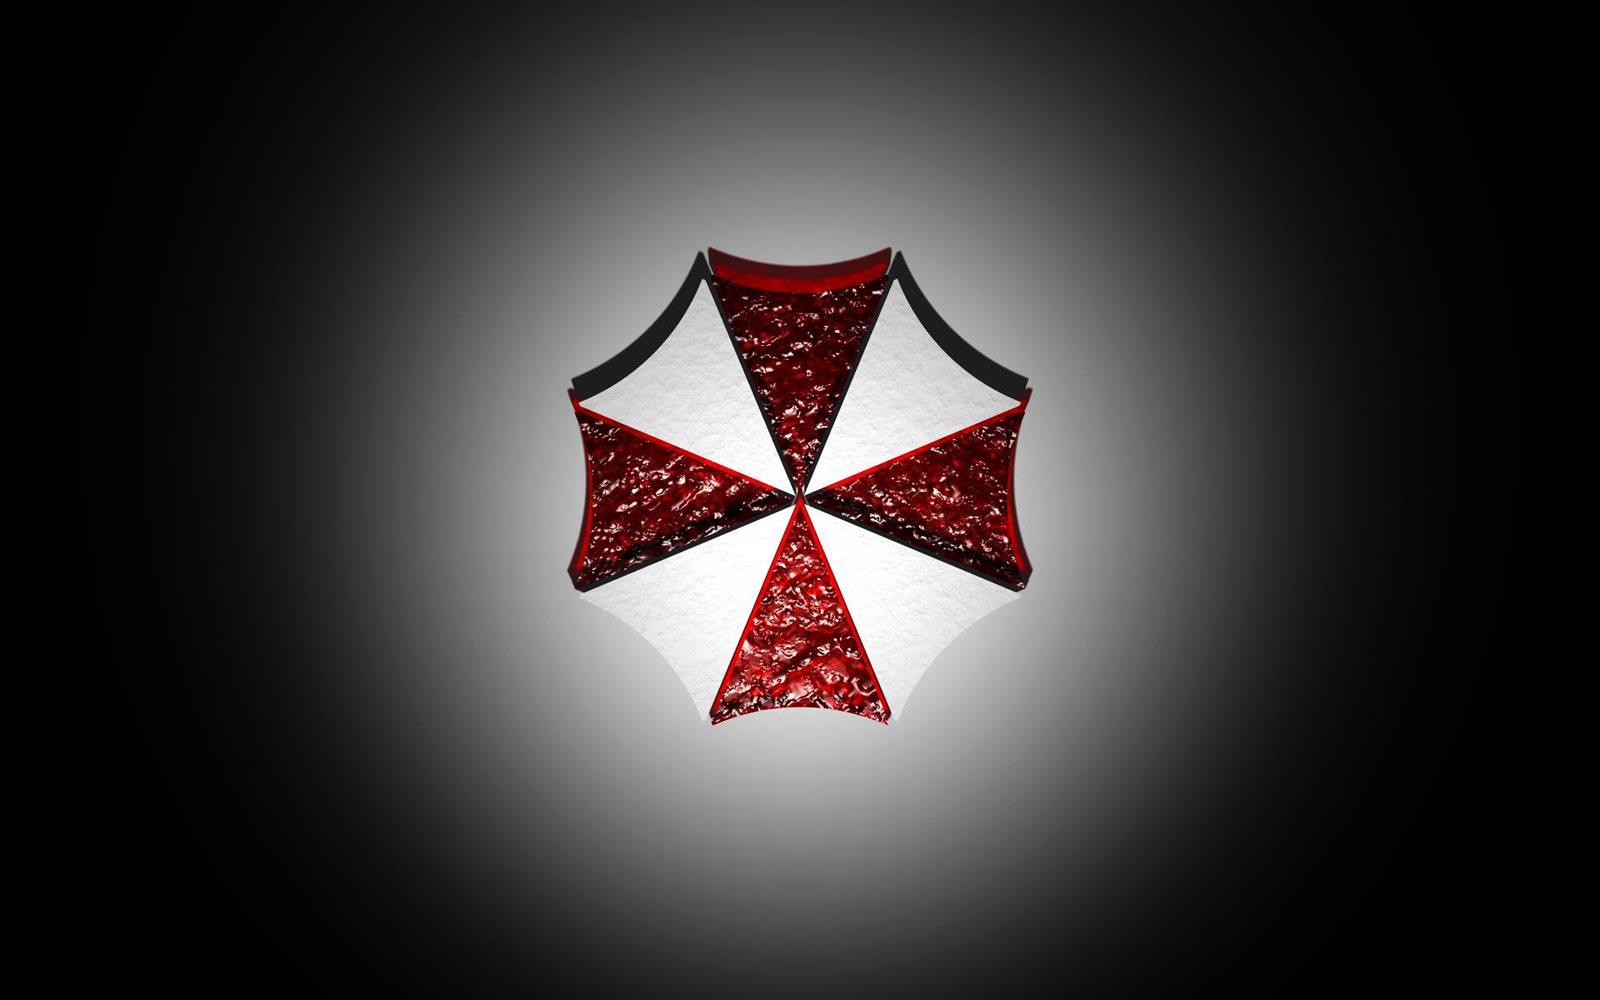 Trololo blogg wallpaper hd umbrella corp - Umbrella corporation wallpaper hd 1366x768 ...